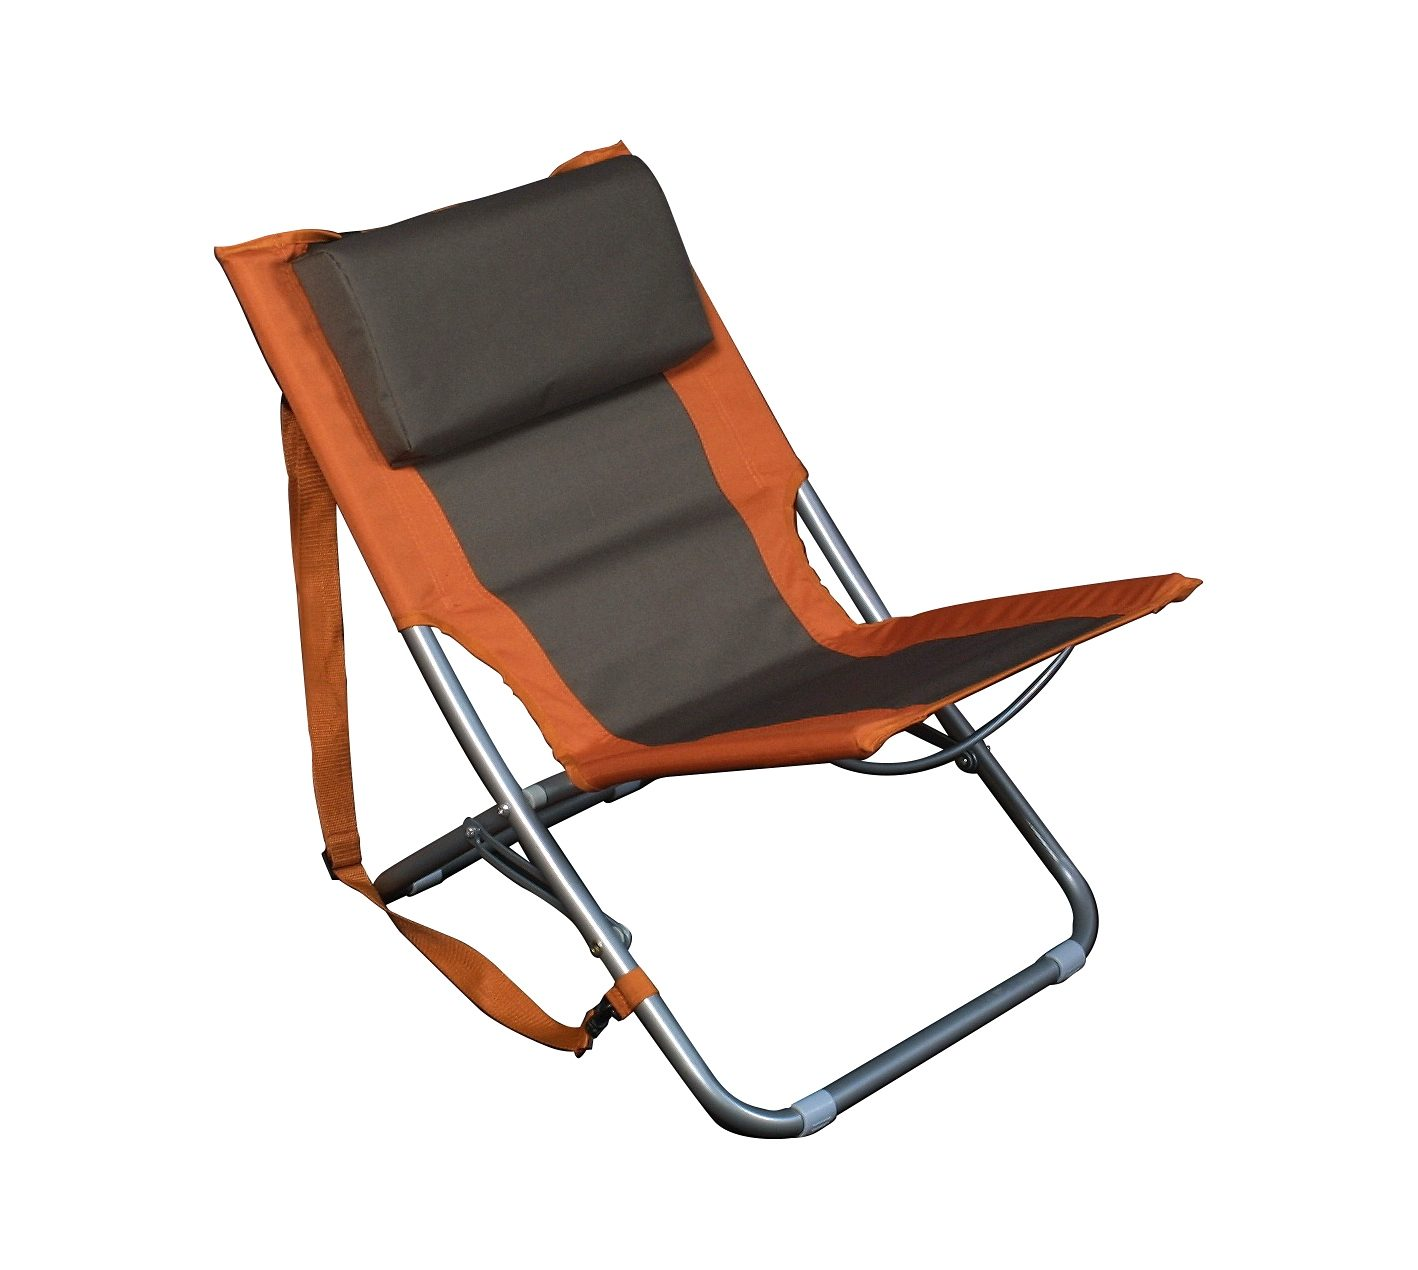 Relags Camping-Stuhl »Travelchair Beach orange/braun«